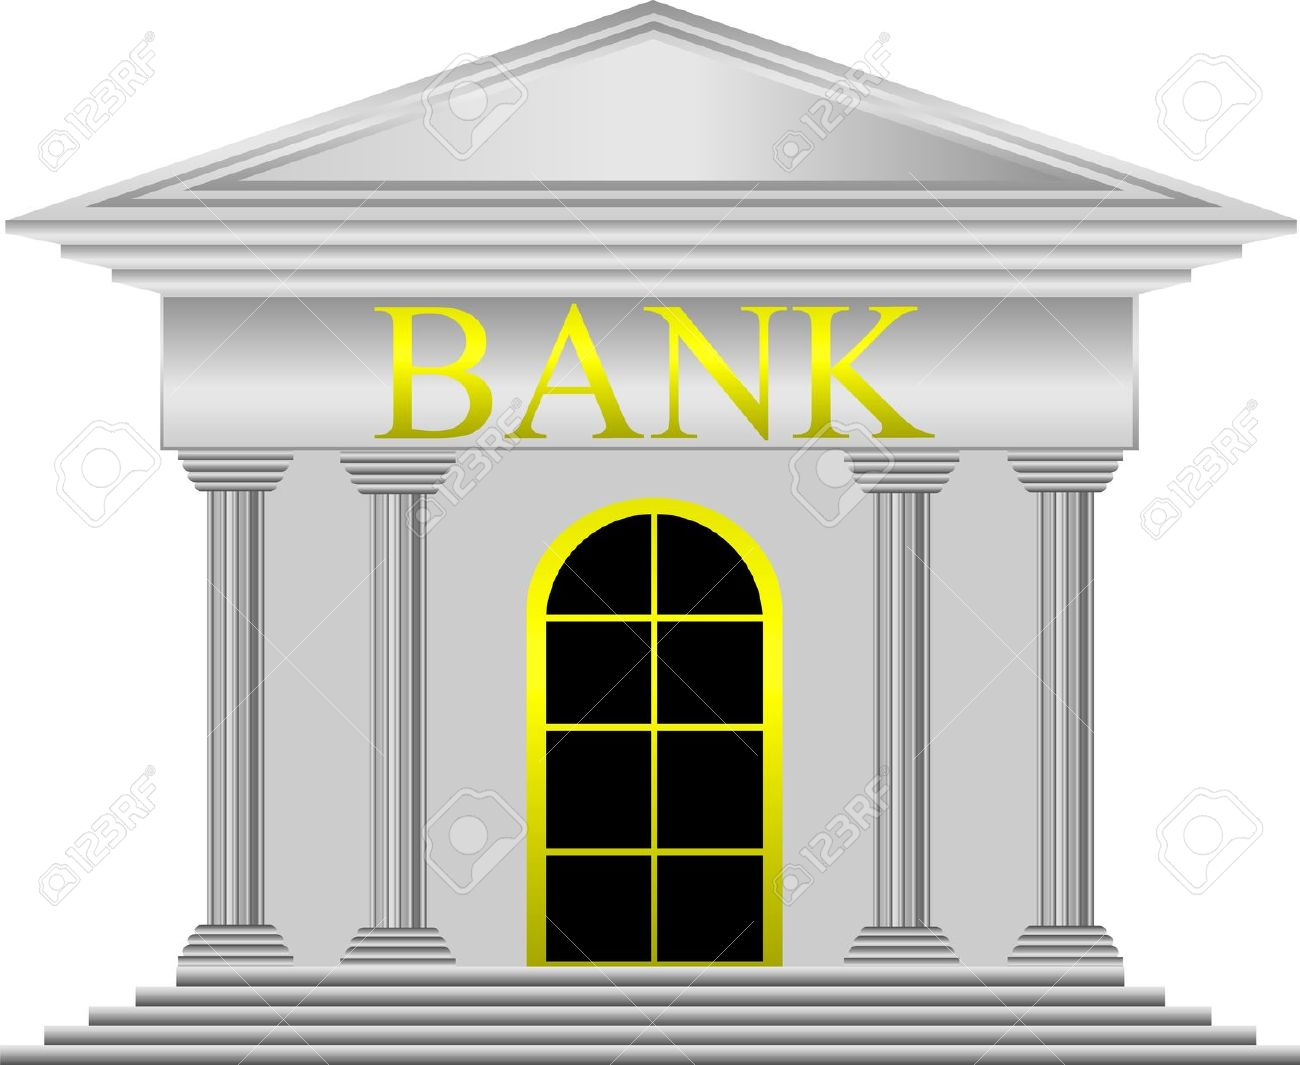 national bank clipart clipground banking clip art free images banking clip art images